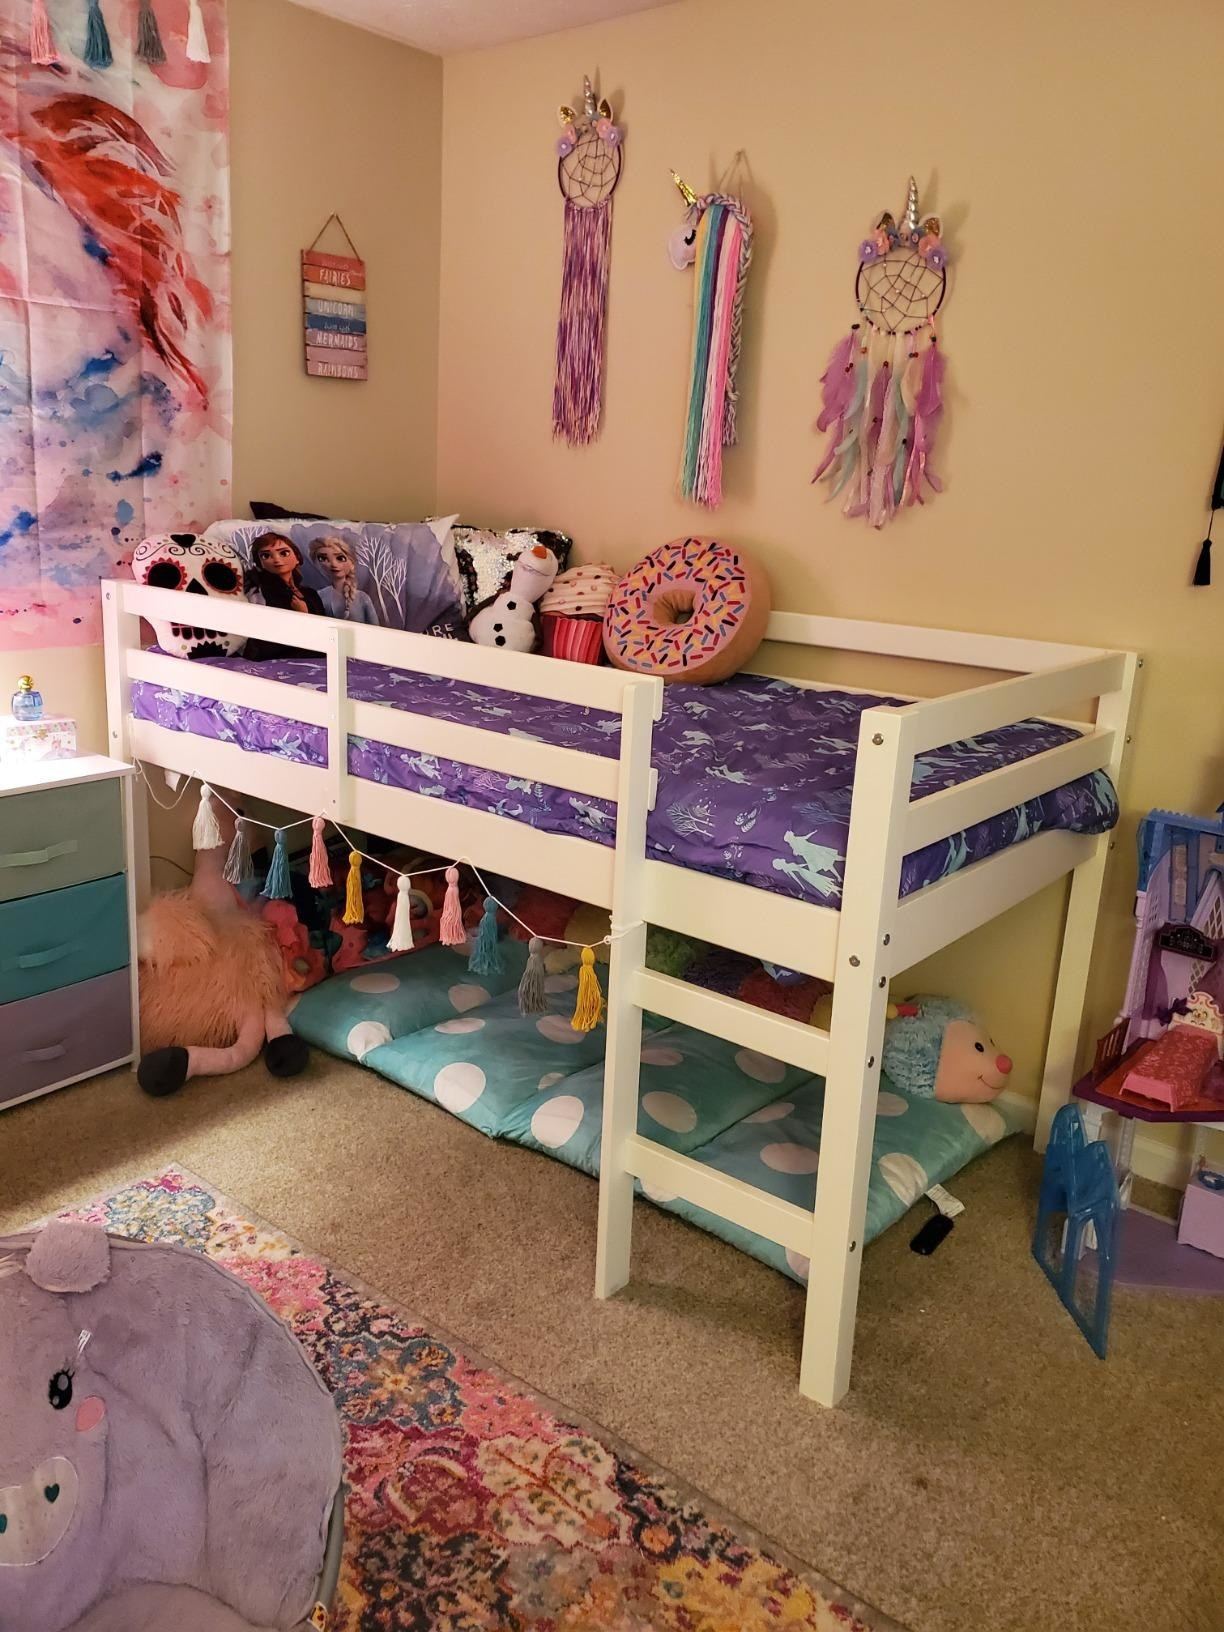 reviewer's photo of the lofted white bed frame with a play space underneath